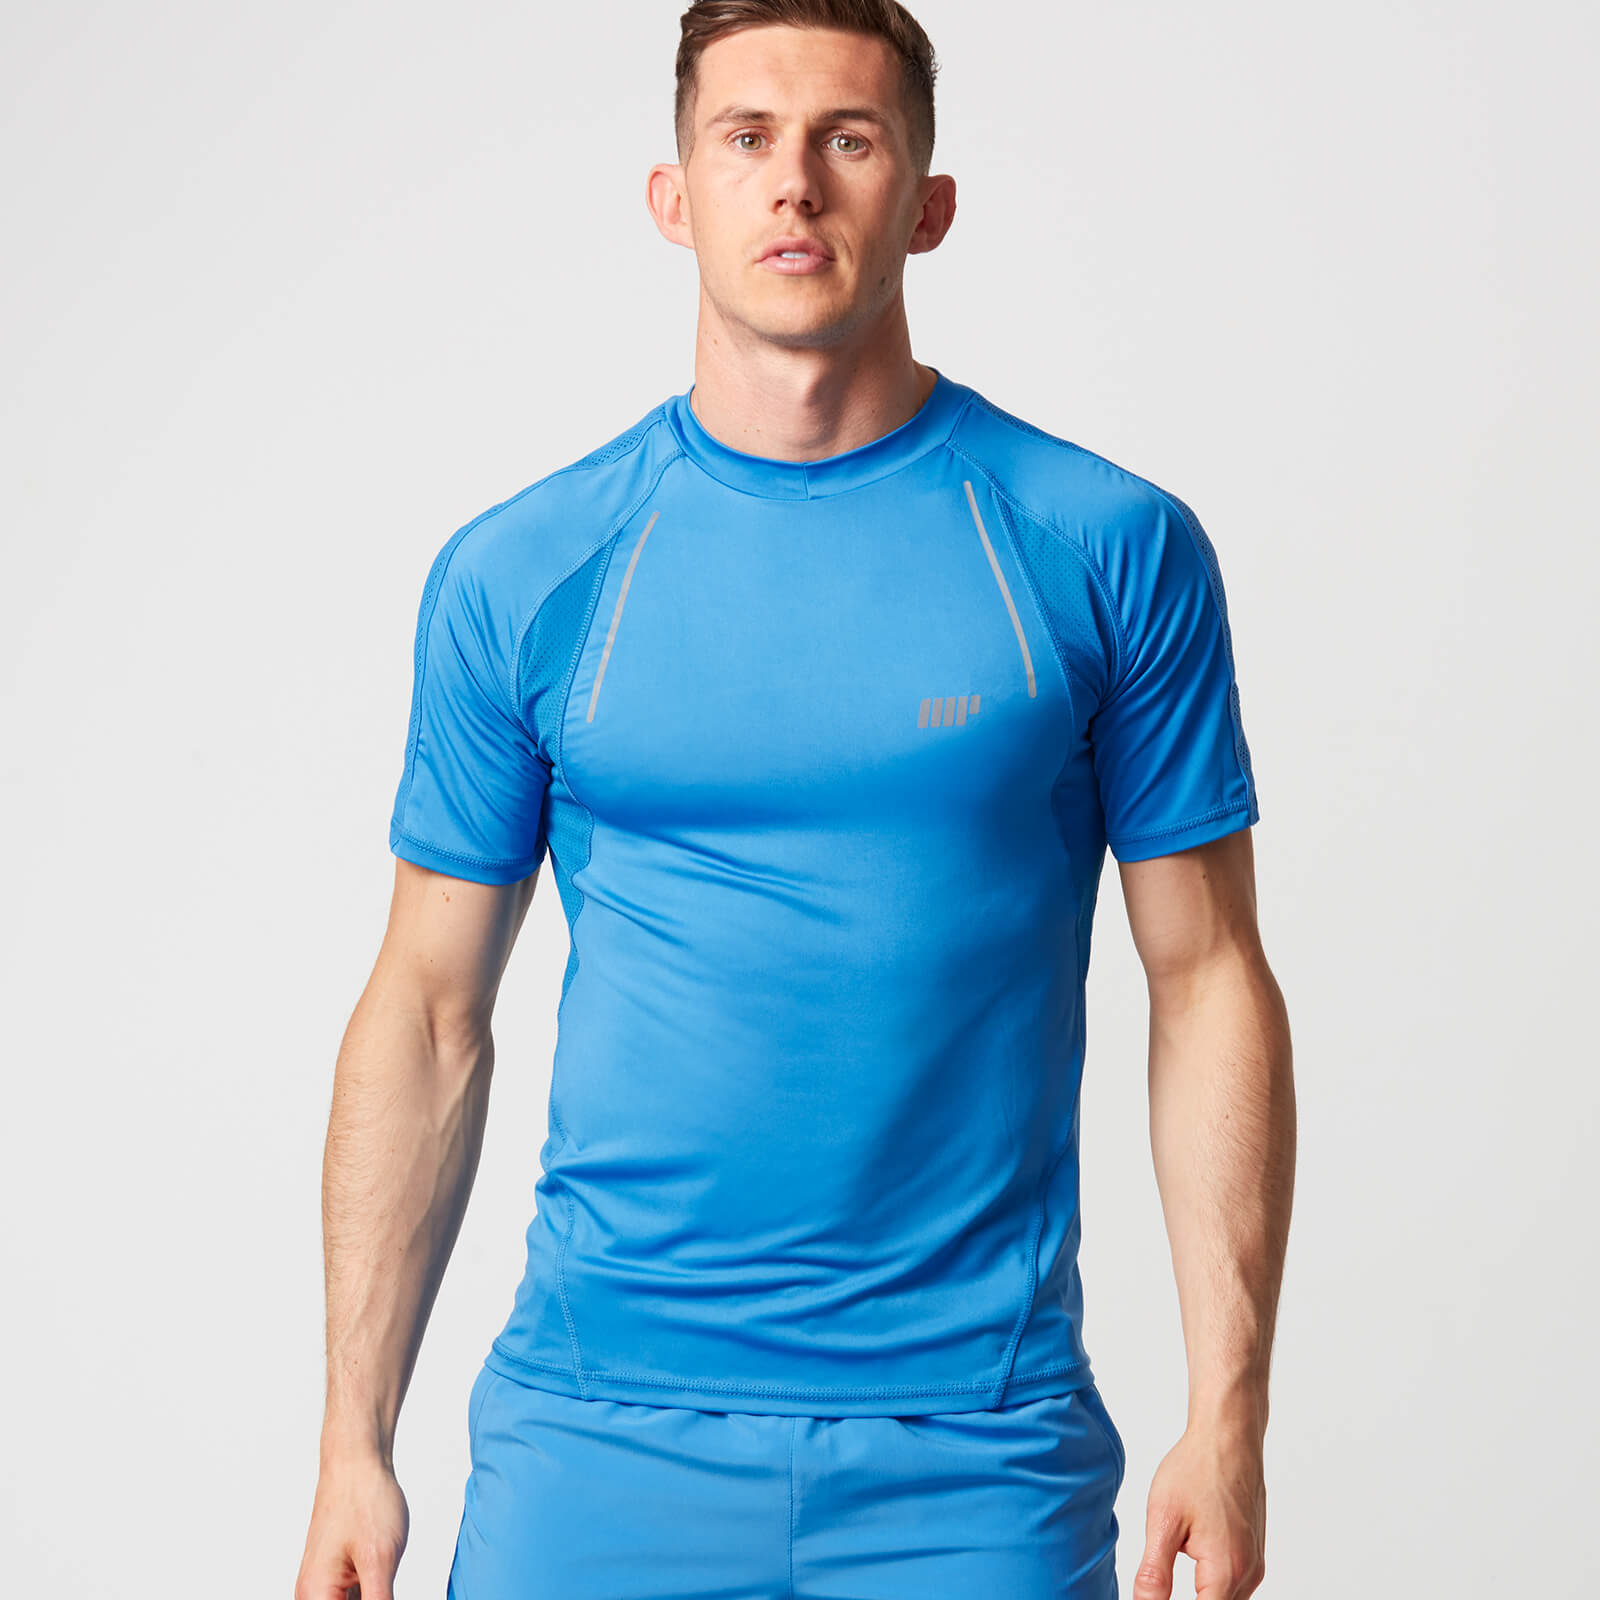 Myprotein Strike Football T-Shirt - Light Blue - S